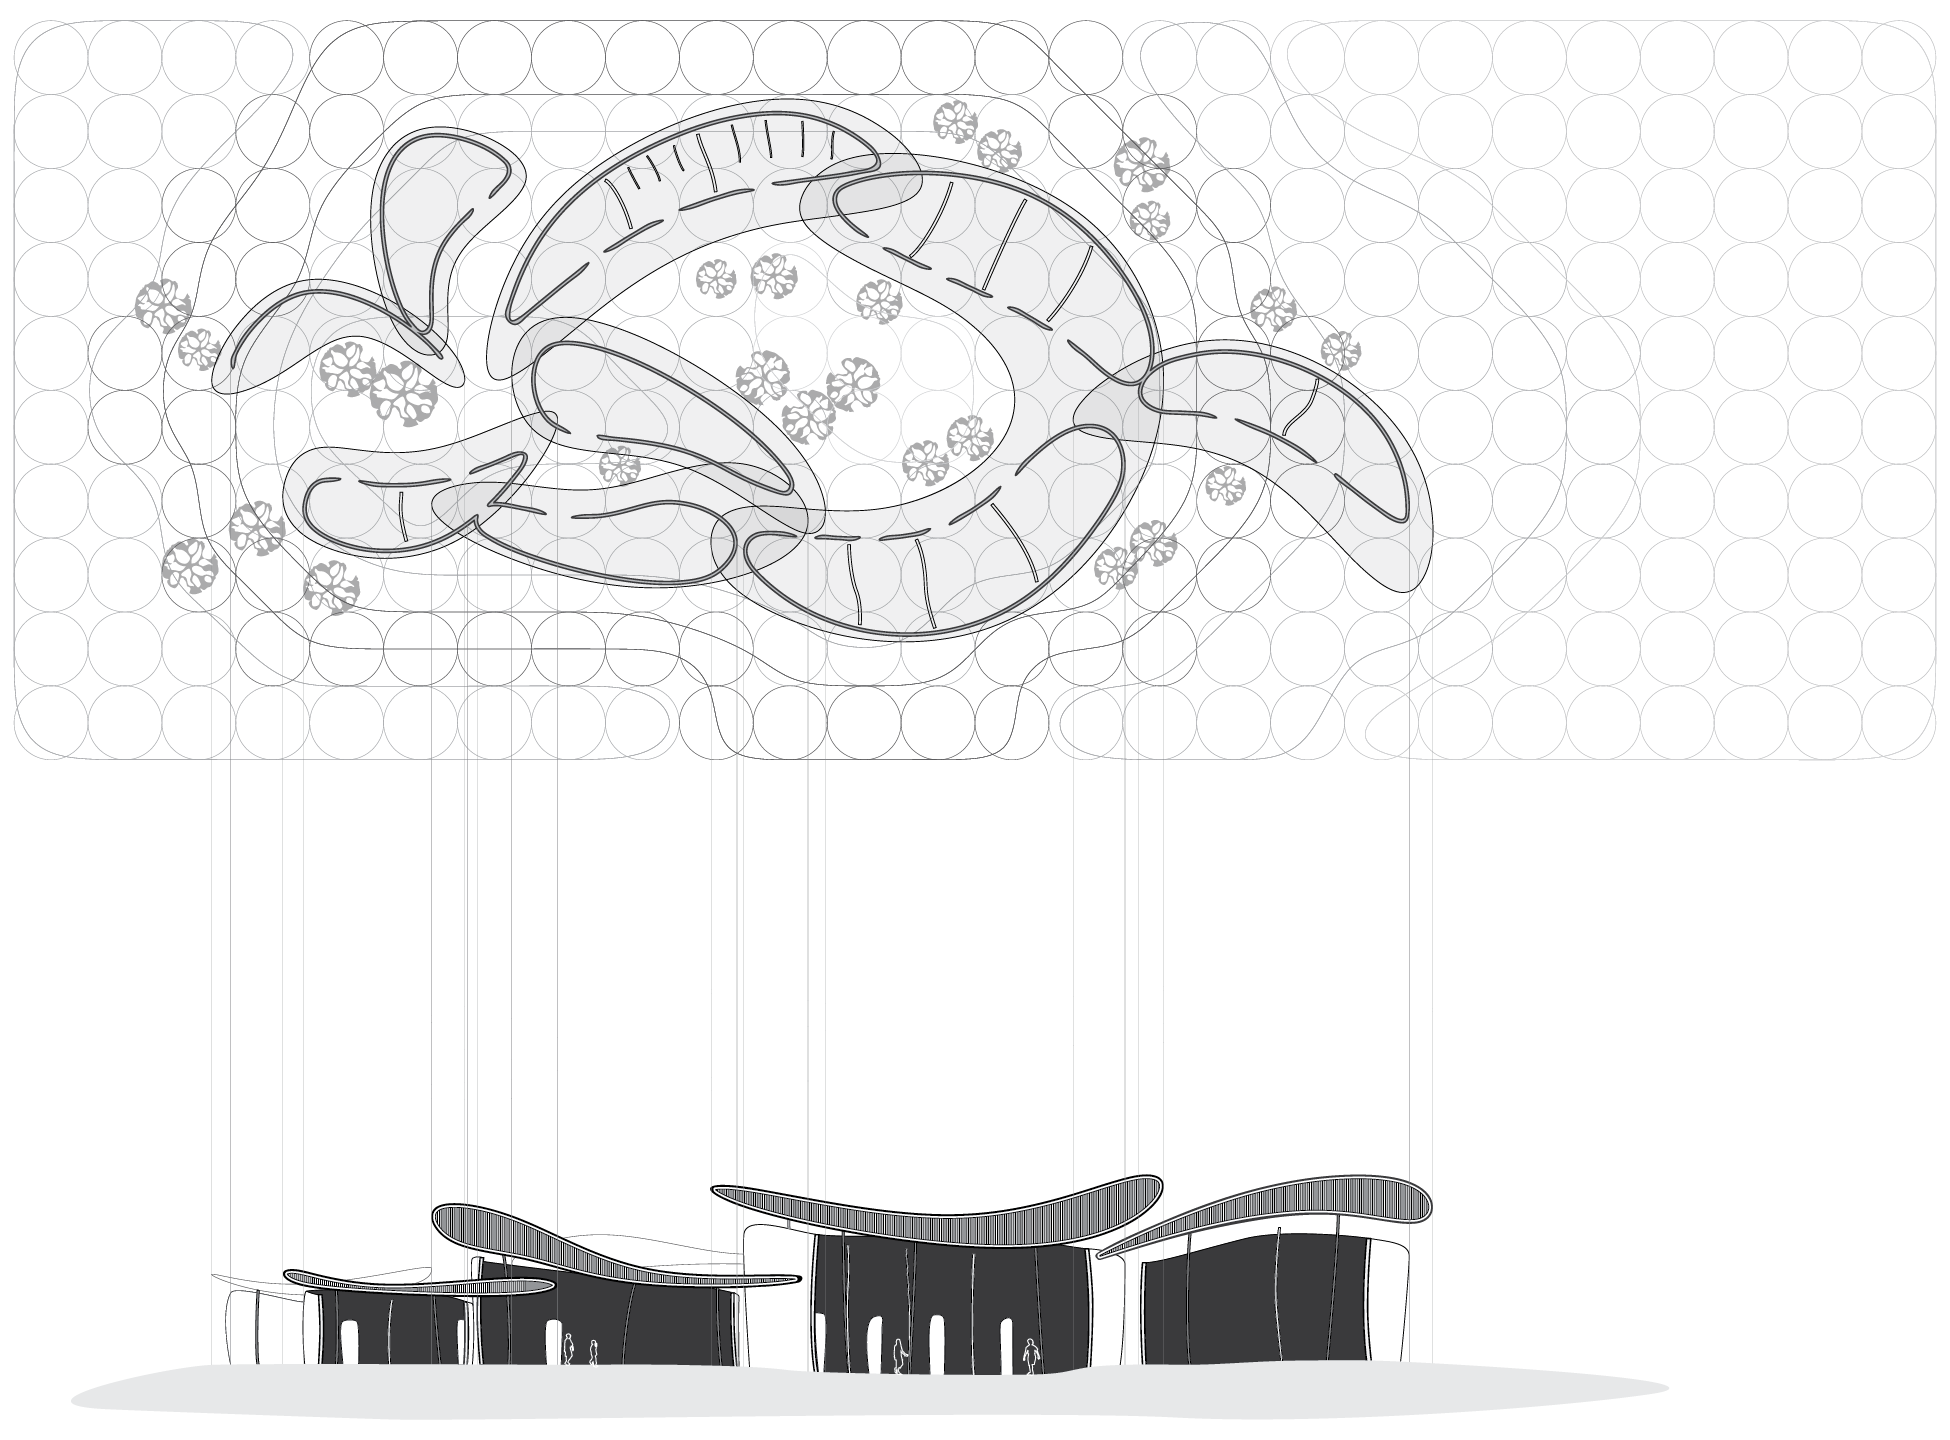 roof plan and section